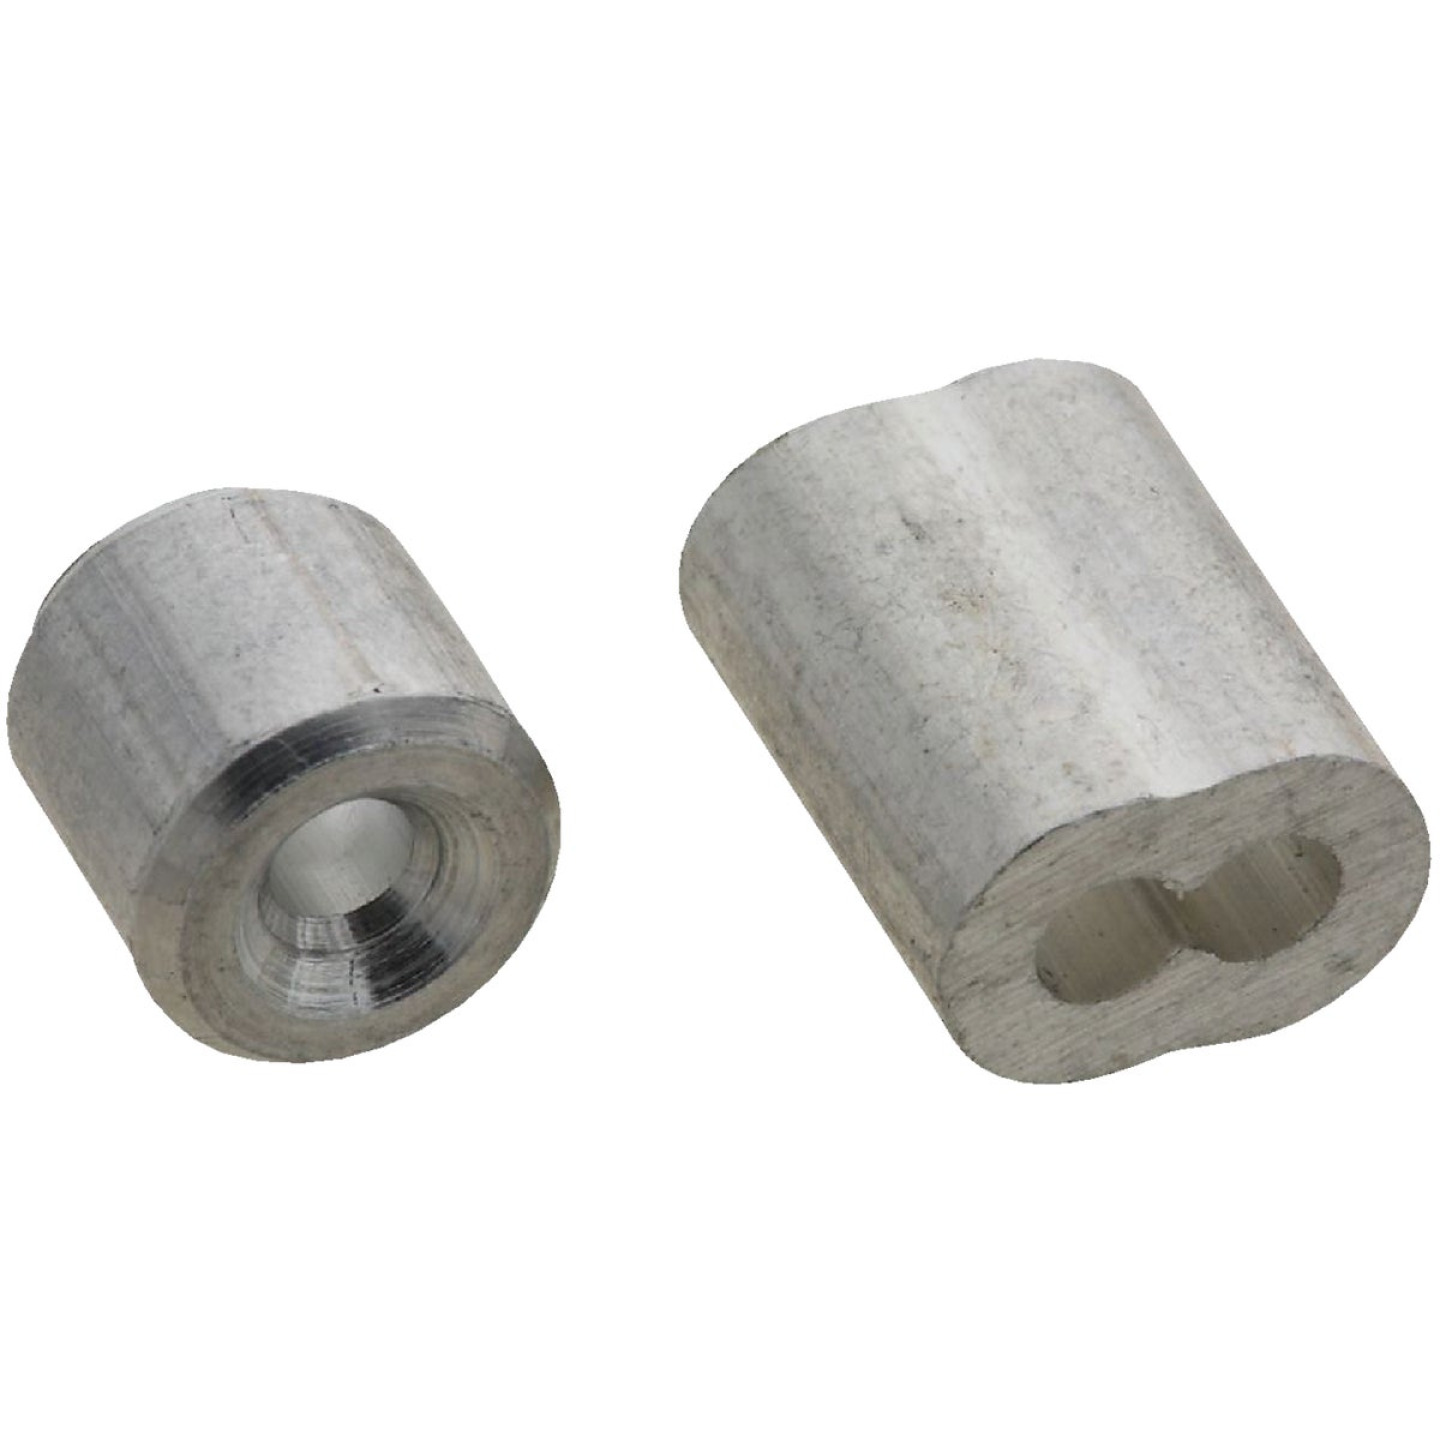 National 3/32 In. Aluminum Garage Door Ferrule & Stop Kit Image 1